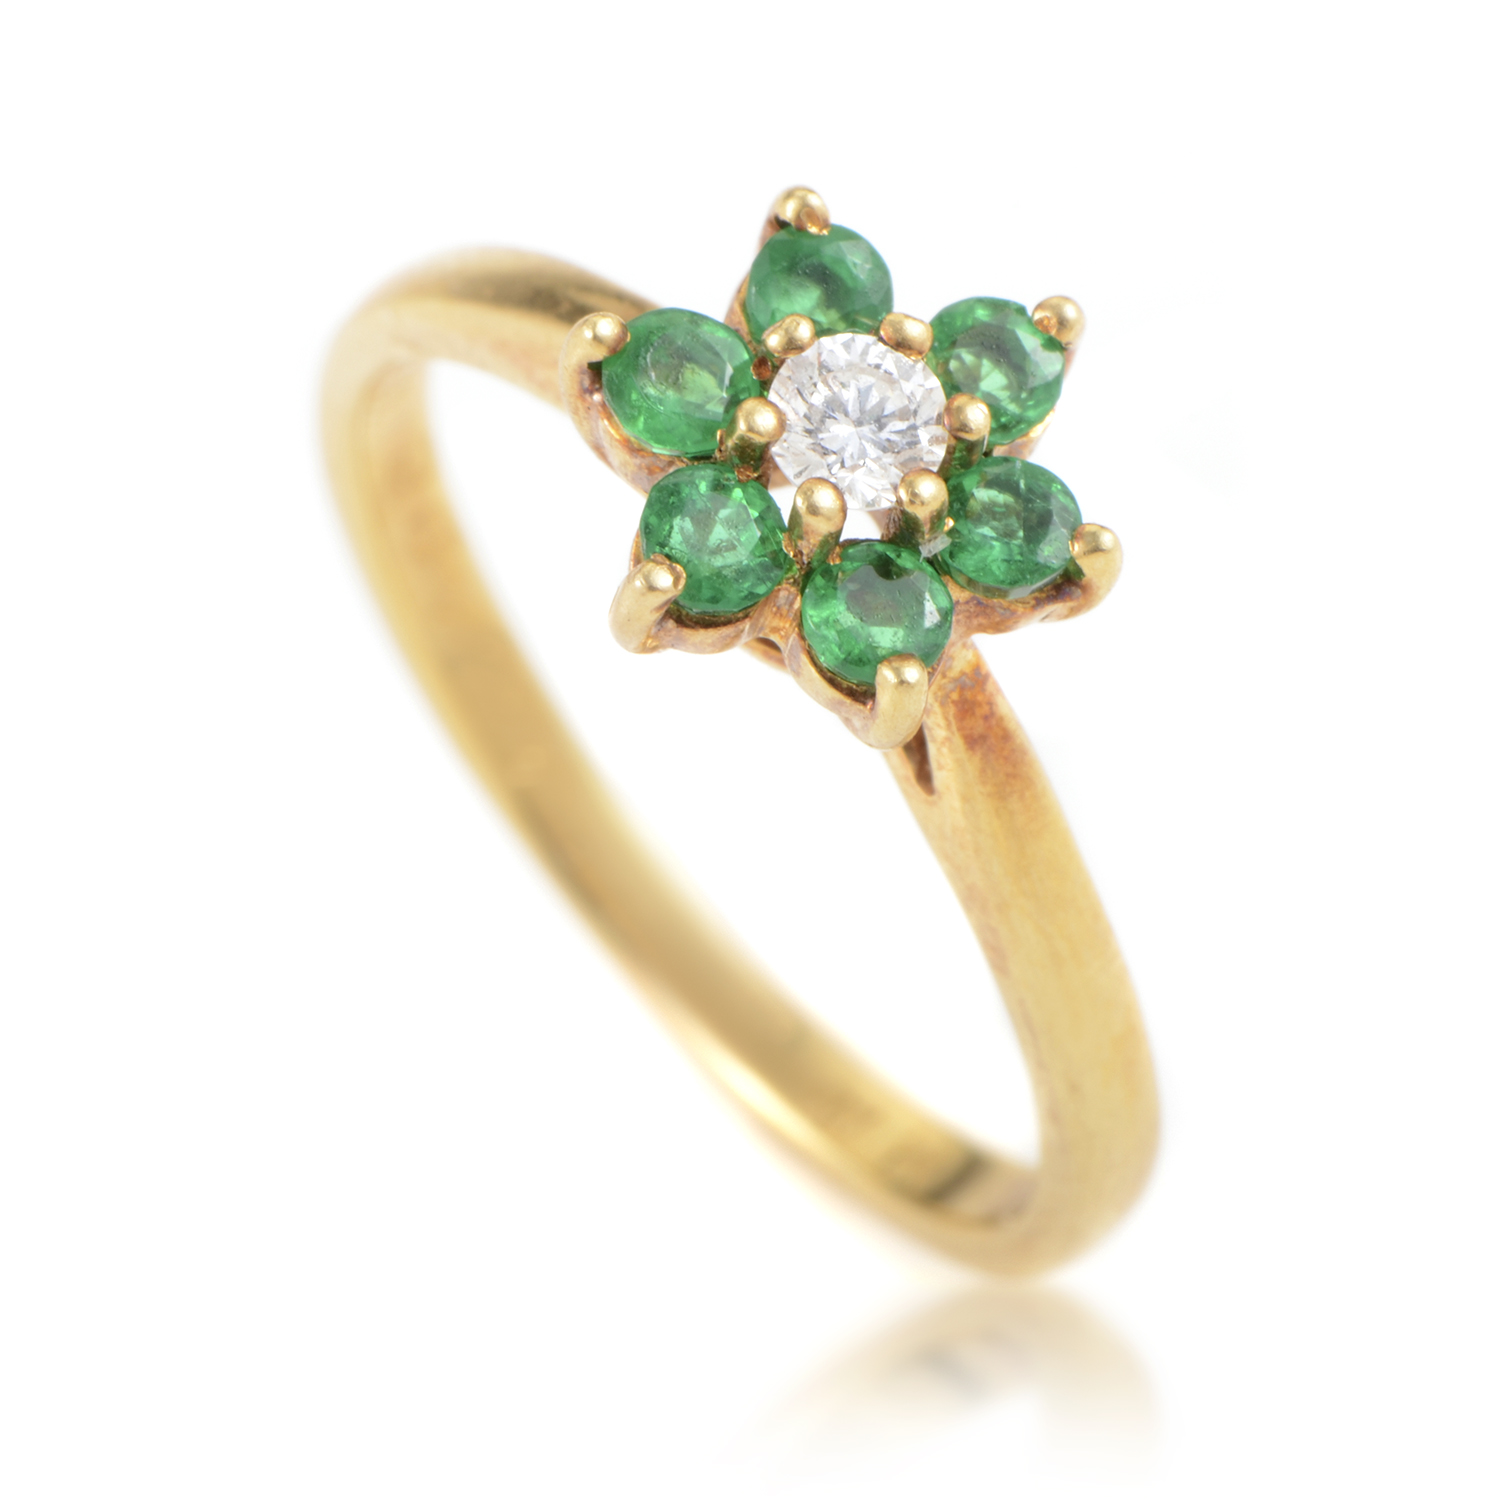 Tiffany & Co. 18K Yellow Gold Diamond & Emerald Flower Ring